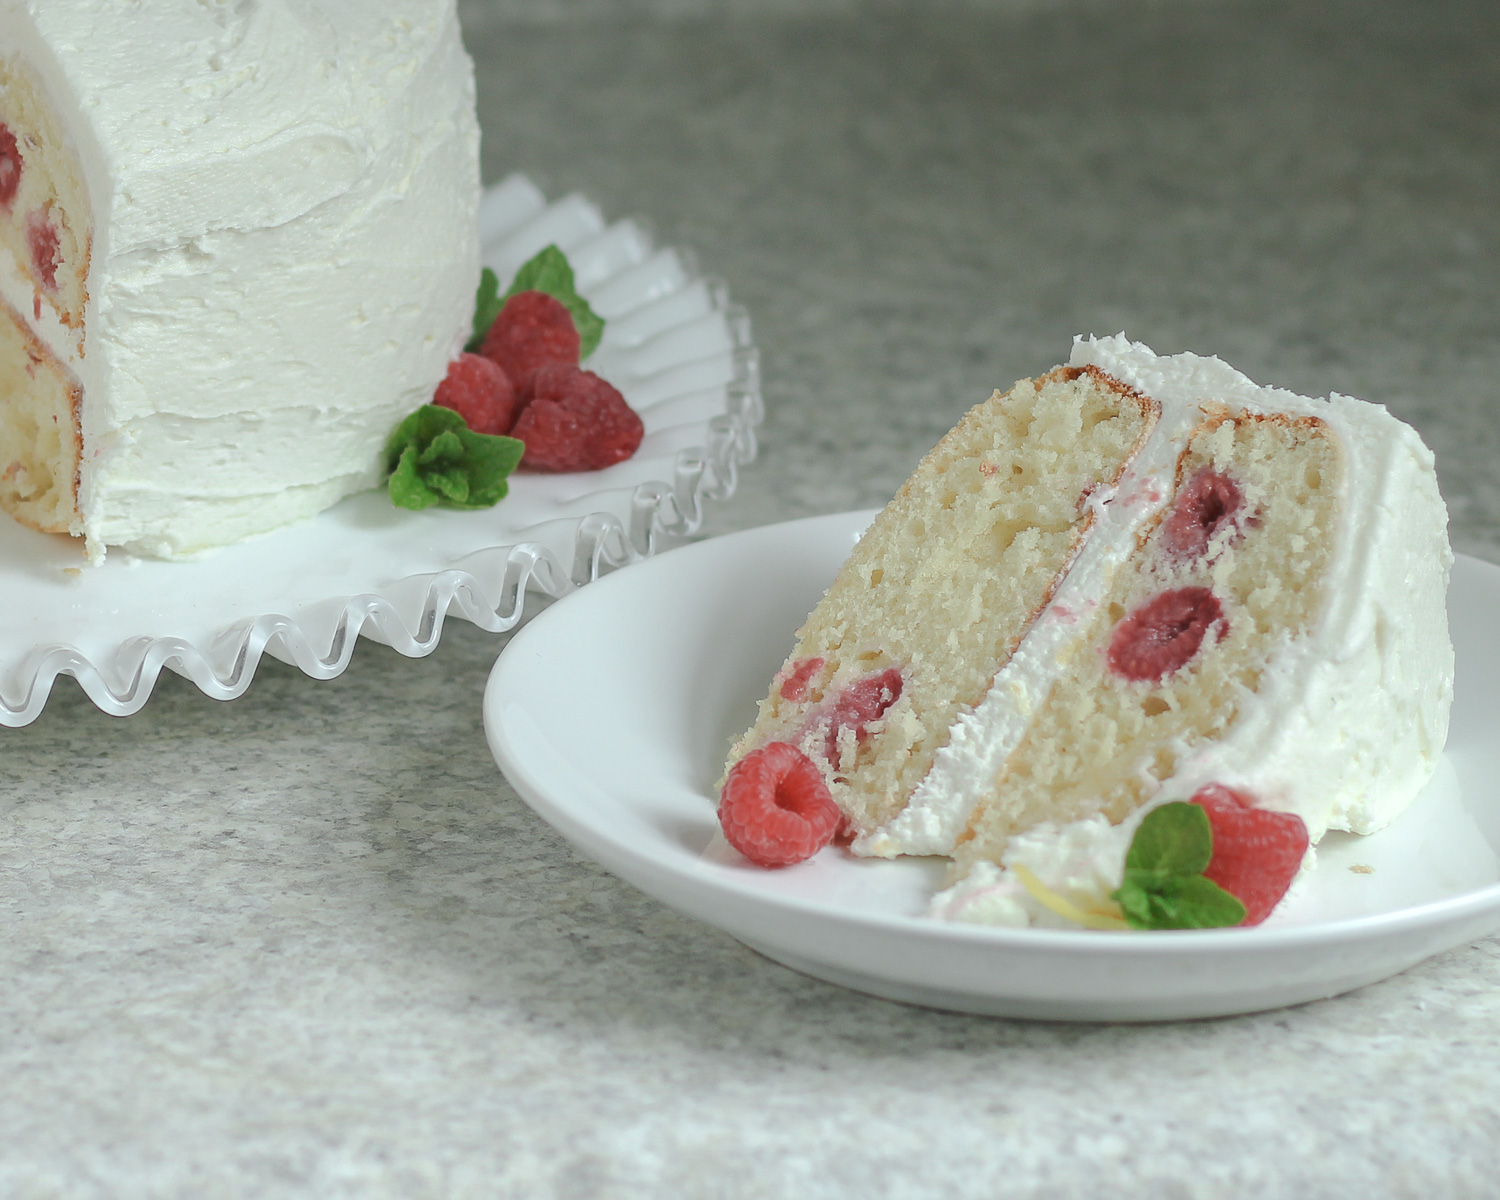 this week's bake – raspberry lemon cake